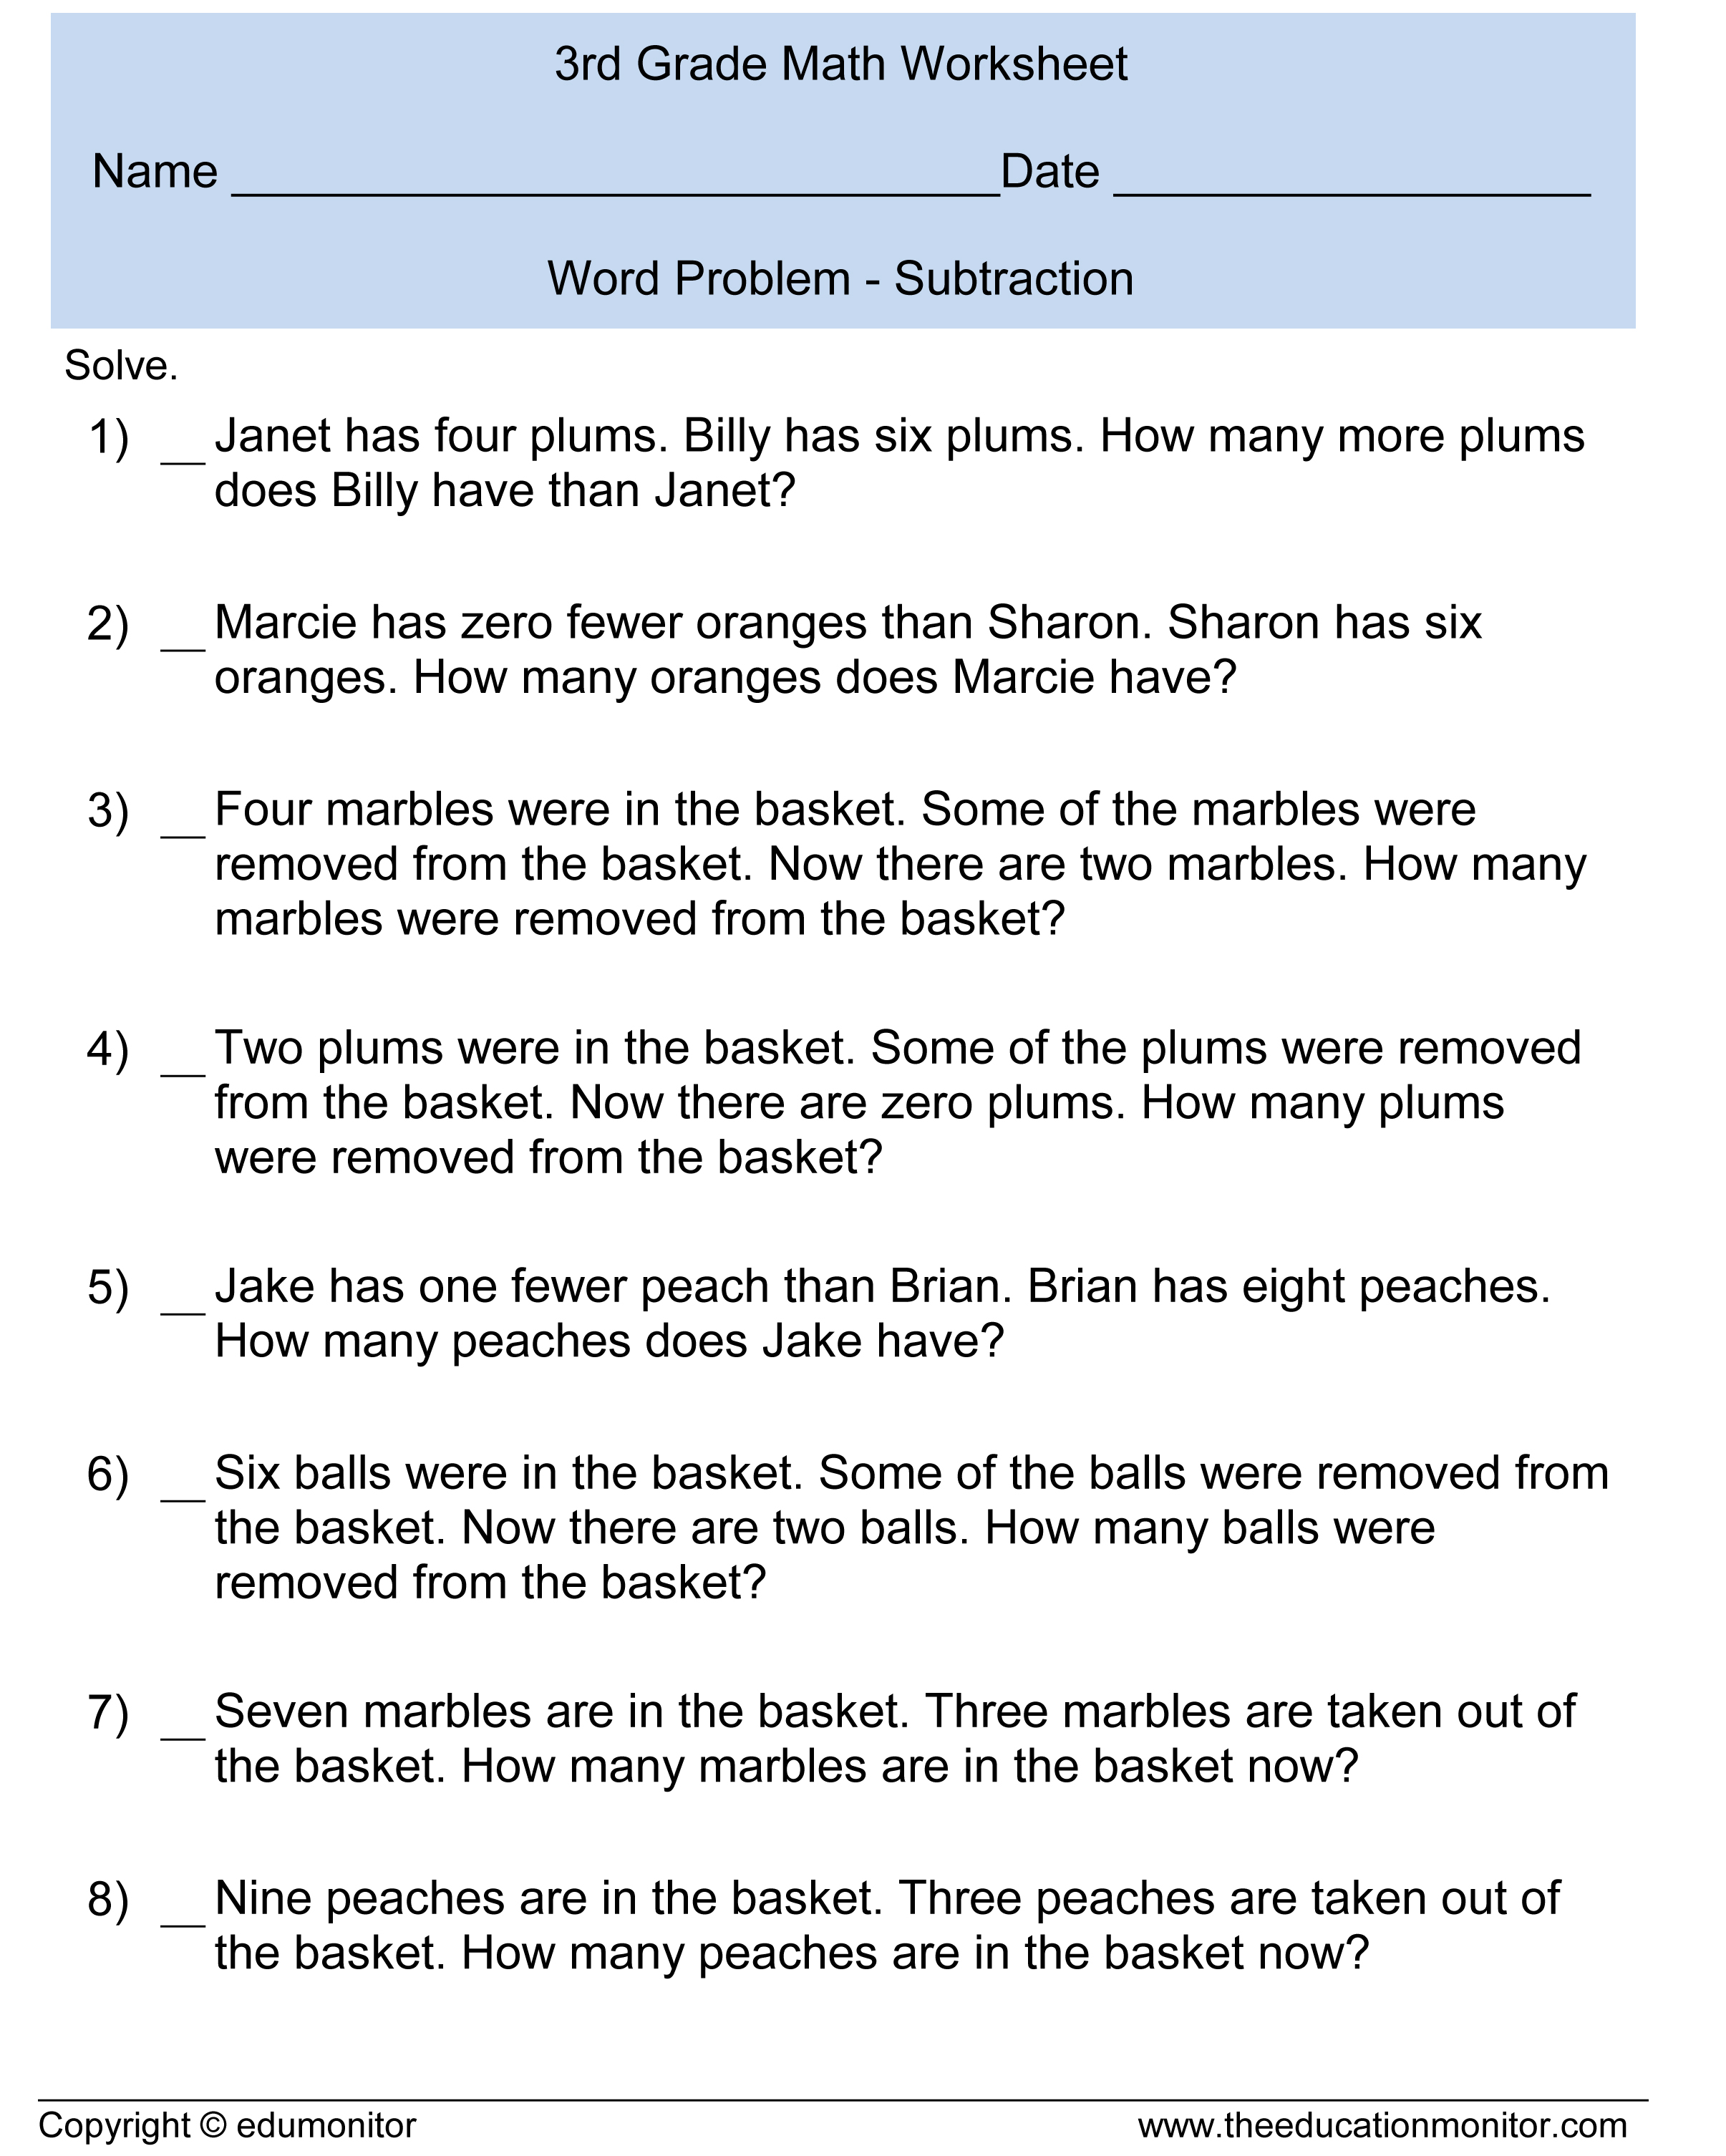 math worksheet : third grade word problem worksheets  worksheets for kids  : Math Worksheets Grade 4 Word Problems